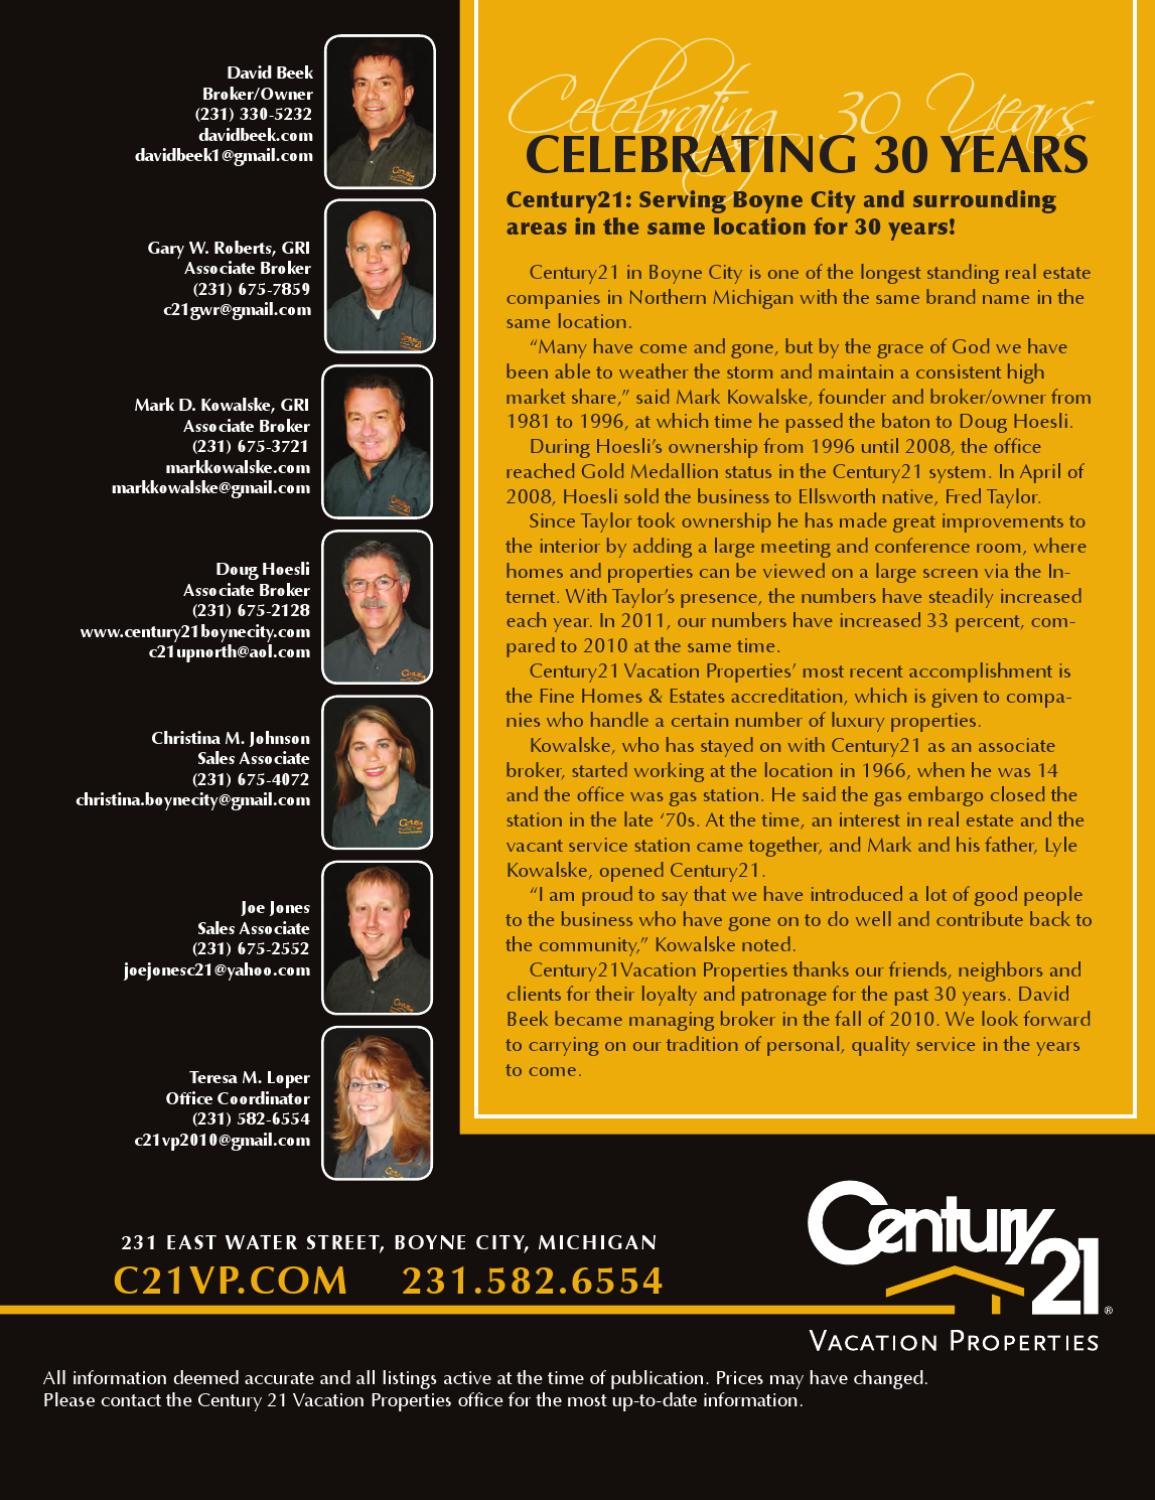 Century 21 -- Lifestyle: Resort and lakefront property guide